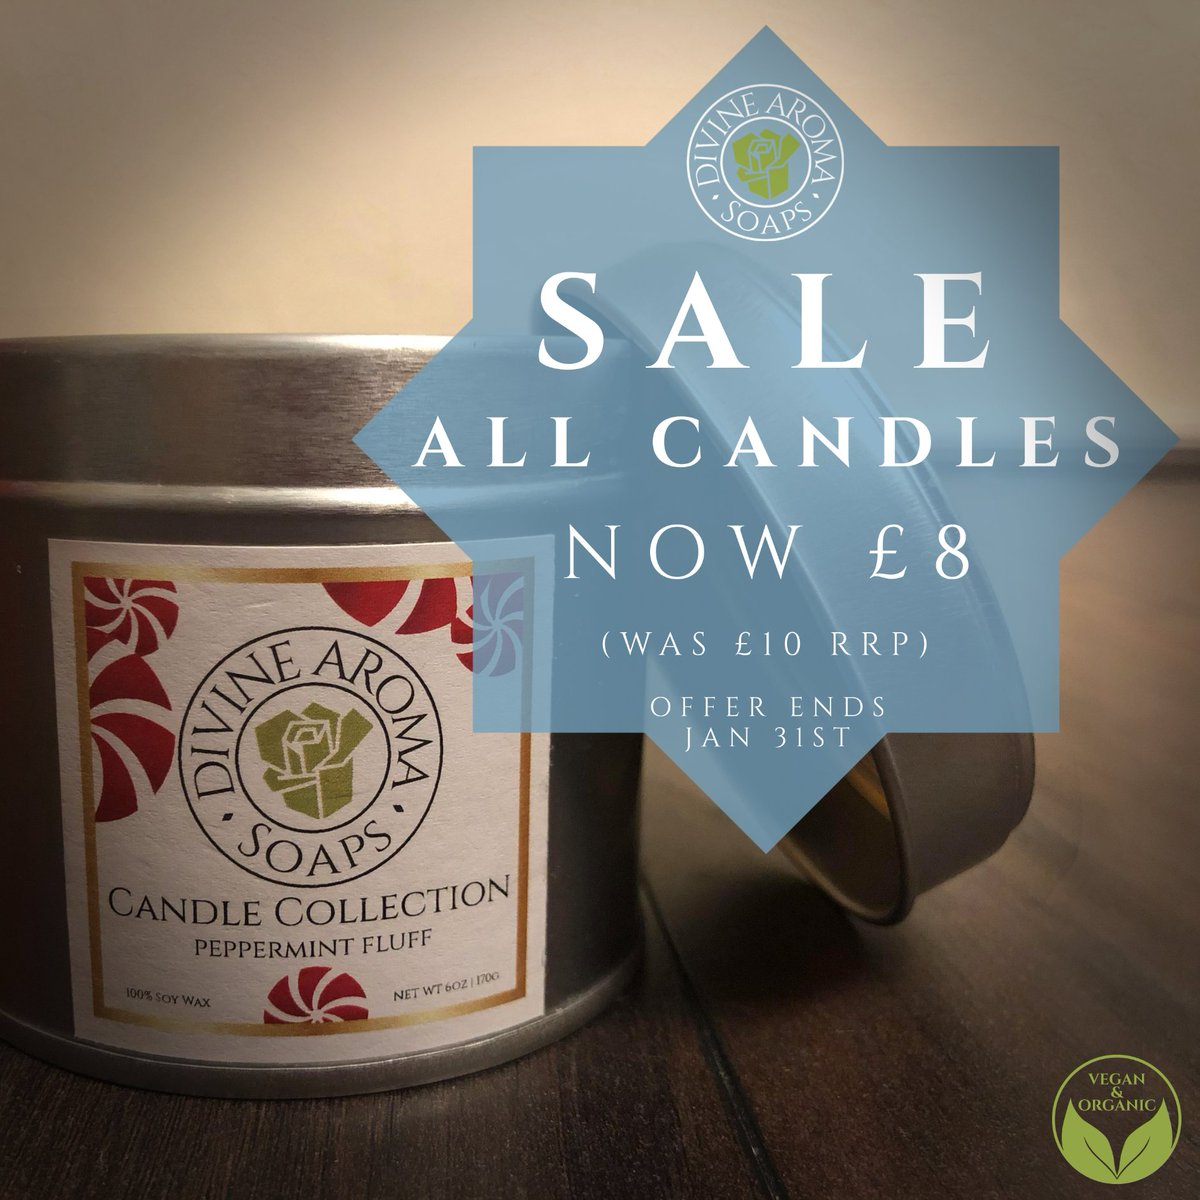 January Sale!  20% off all our candles!  Now £8 each!  https://www.divinearomasoaps.co.uk    Have a Divine Day! #scentedsoaps #scentedcandles #handmade #handmadesoap #handmadecandles #fragrant #vegan #natural #organic #discount #sale #DivineAromaSoaps #soap #SpecialOffer #JanuarySalepic.twitter.com/E9tcu1oL6u